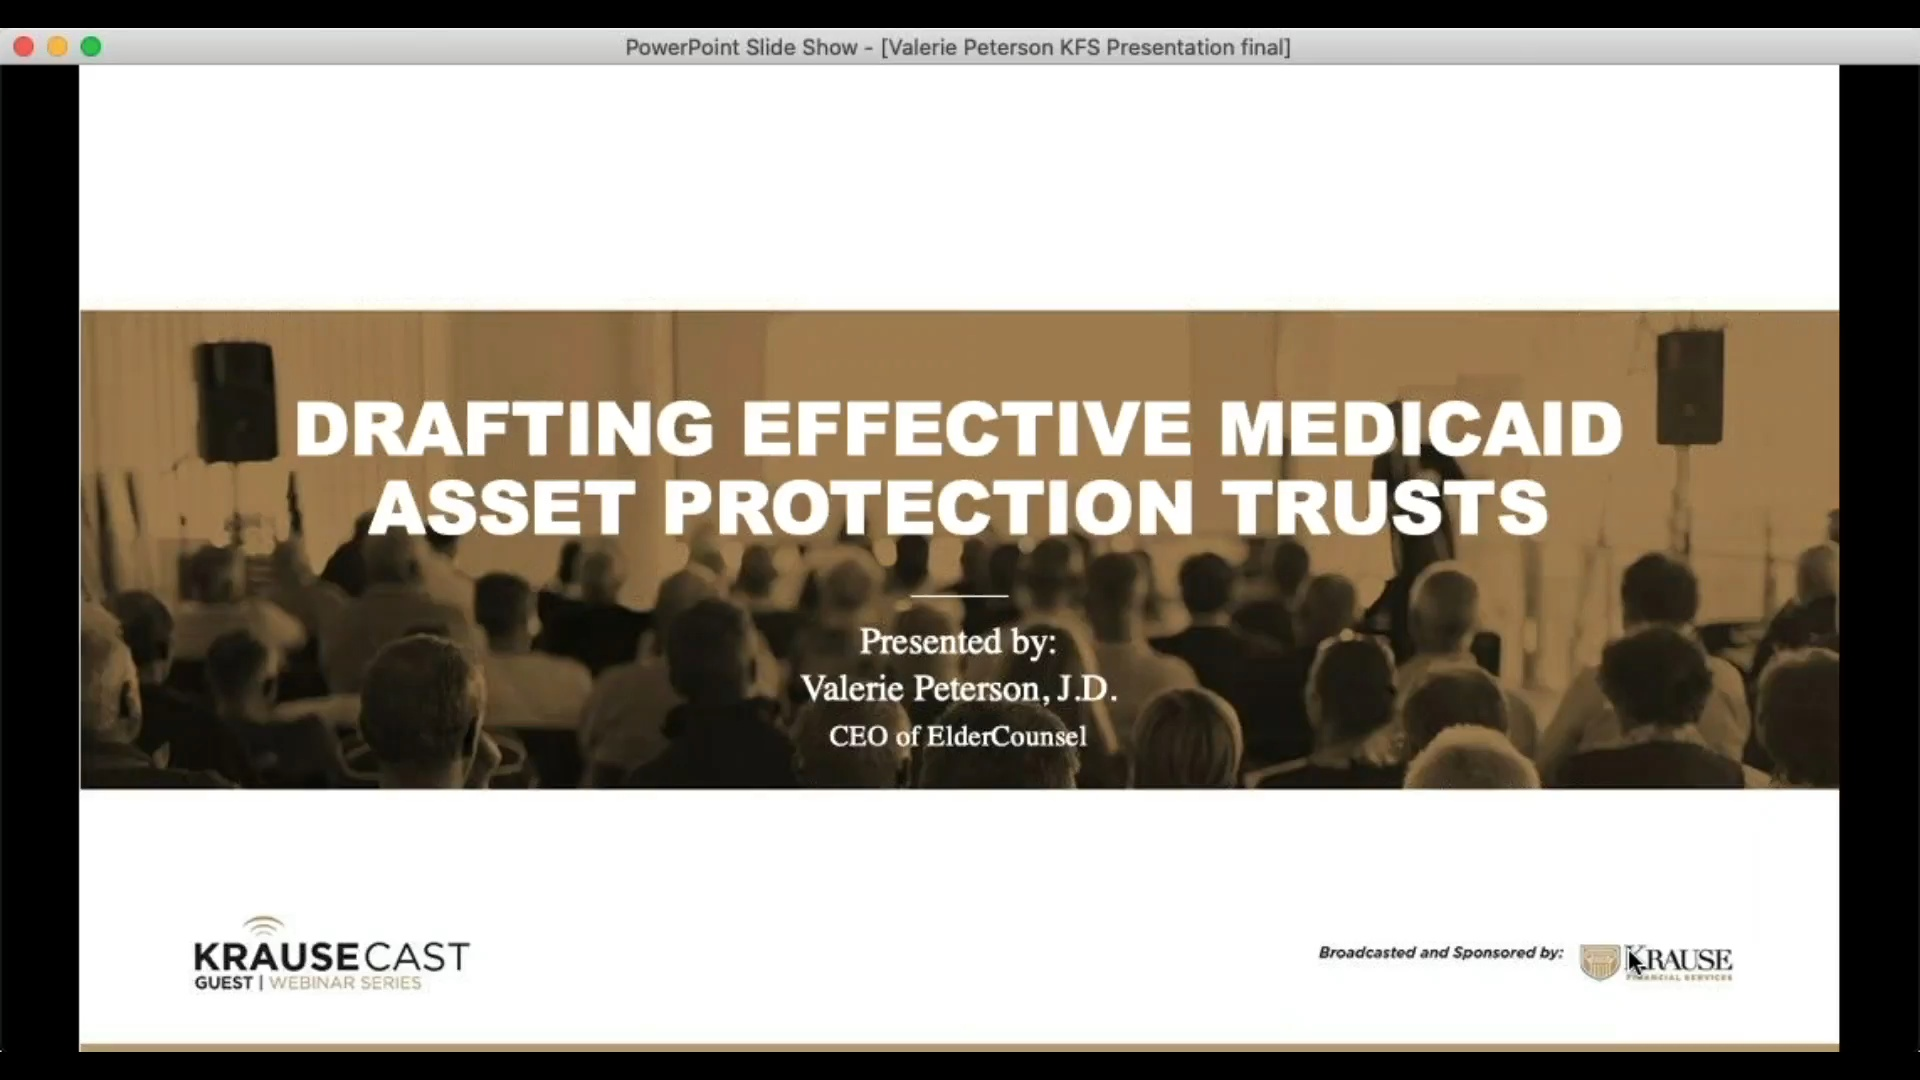 Drafting Effective Medicaid Protection Trusts